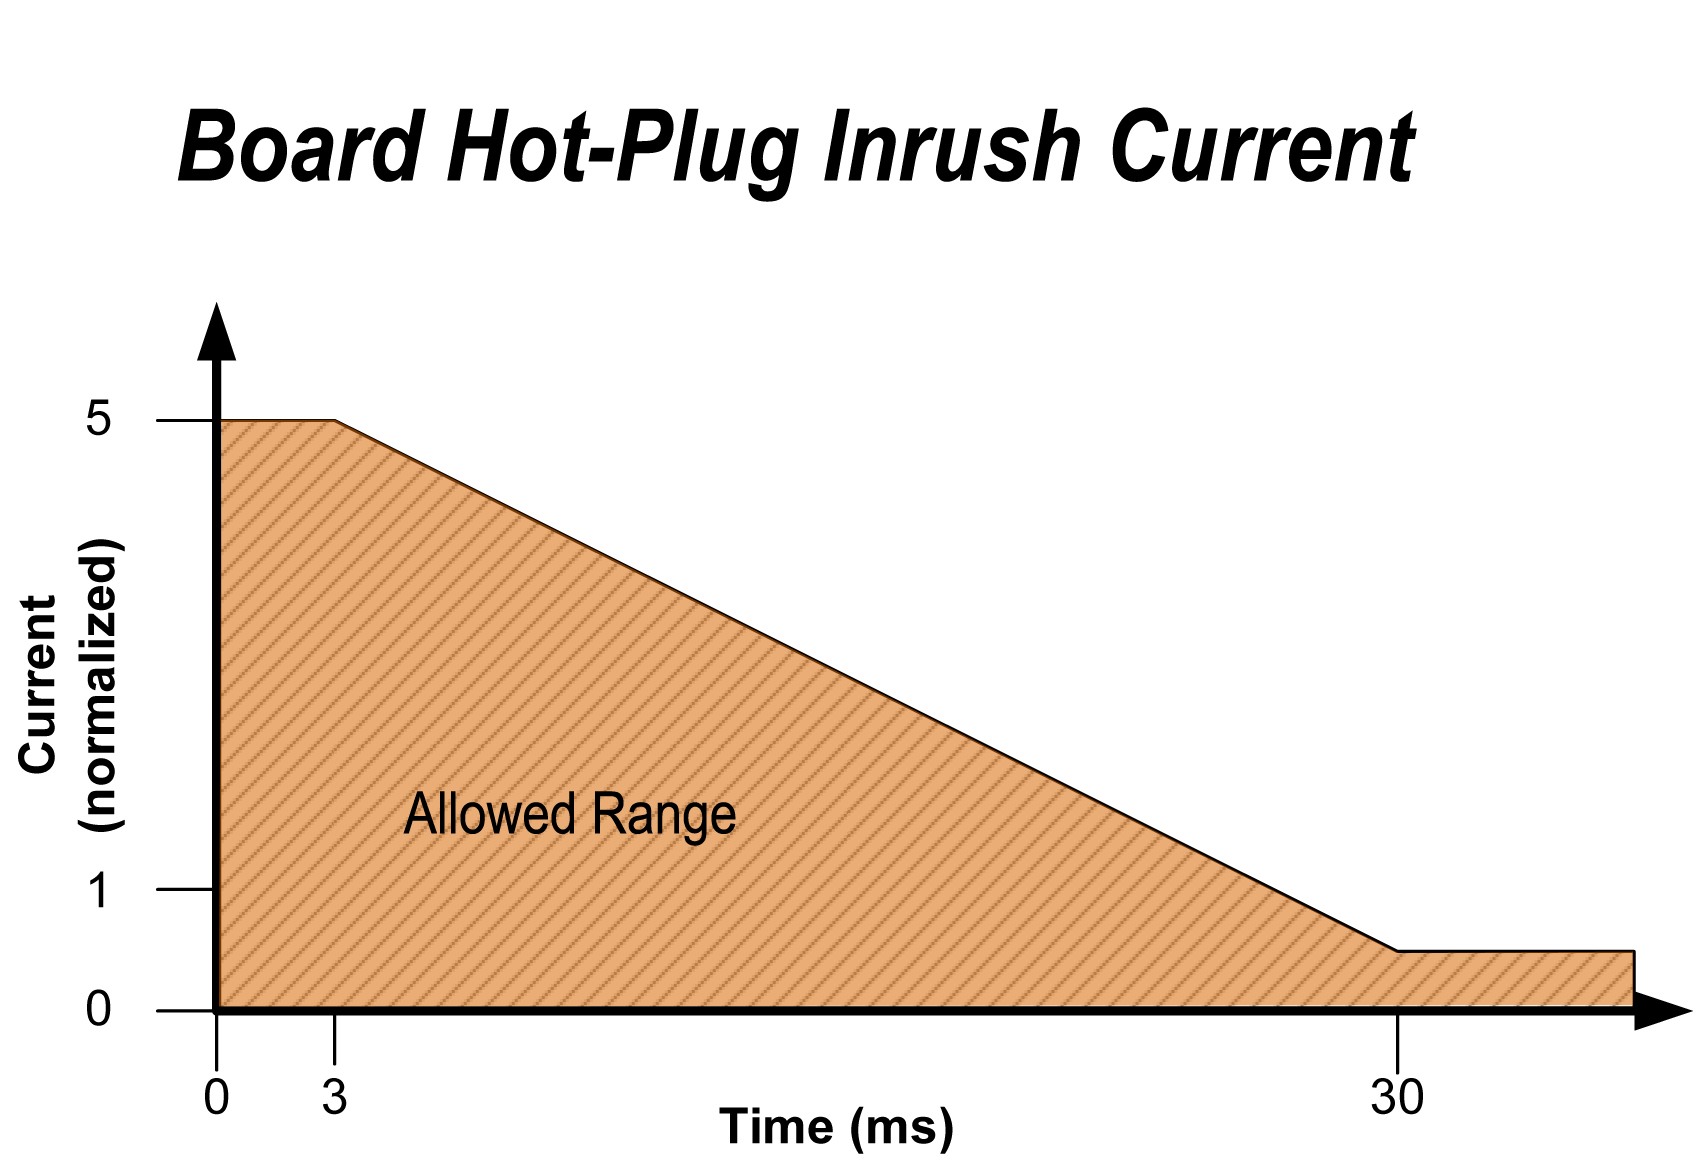 Hot-plugswitch-oncurrentoftheboard